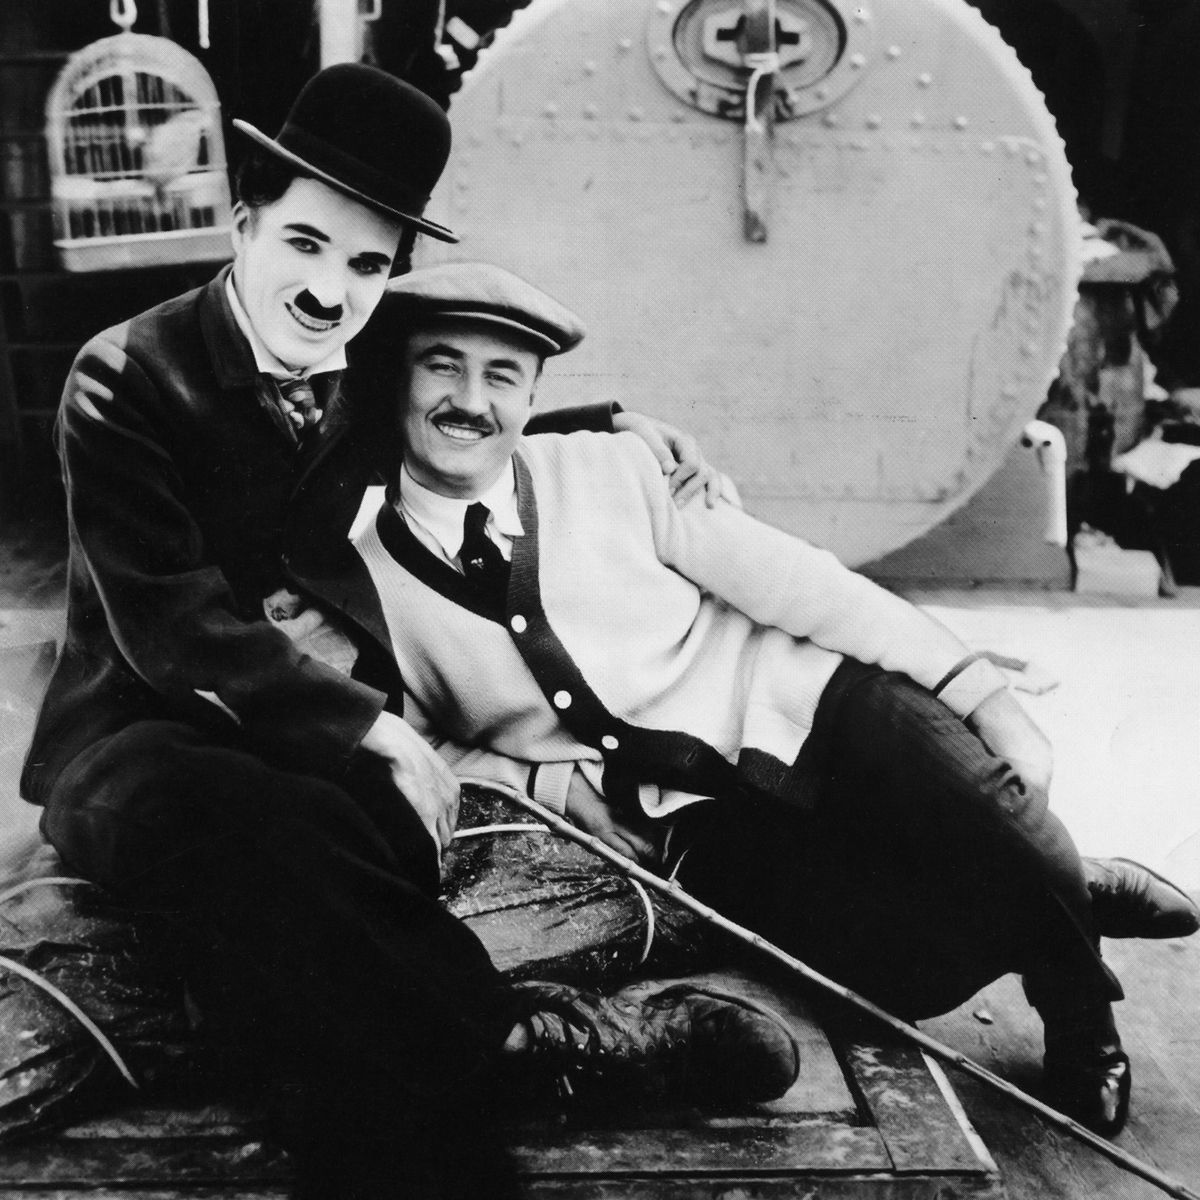 charlie chaplin and his brother sydney chaplin on the set of the thefilmstage ldquo charlie chaplin and his brother sydney chaplin edna purviance on the set of the immigrant watch a video essay on social commentary of